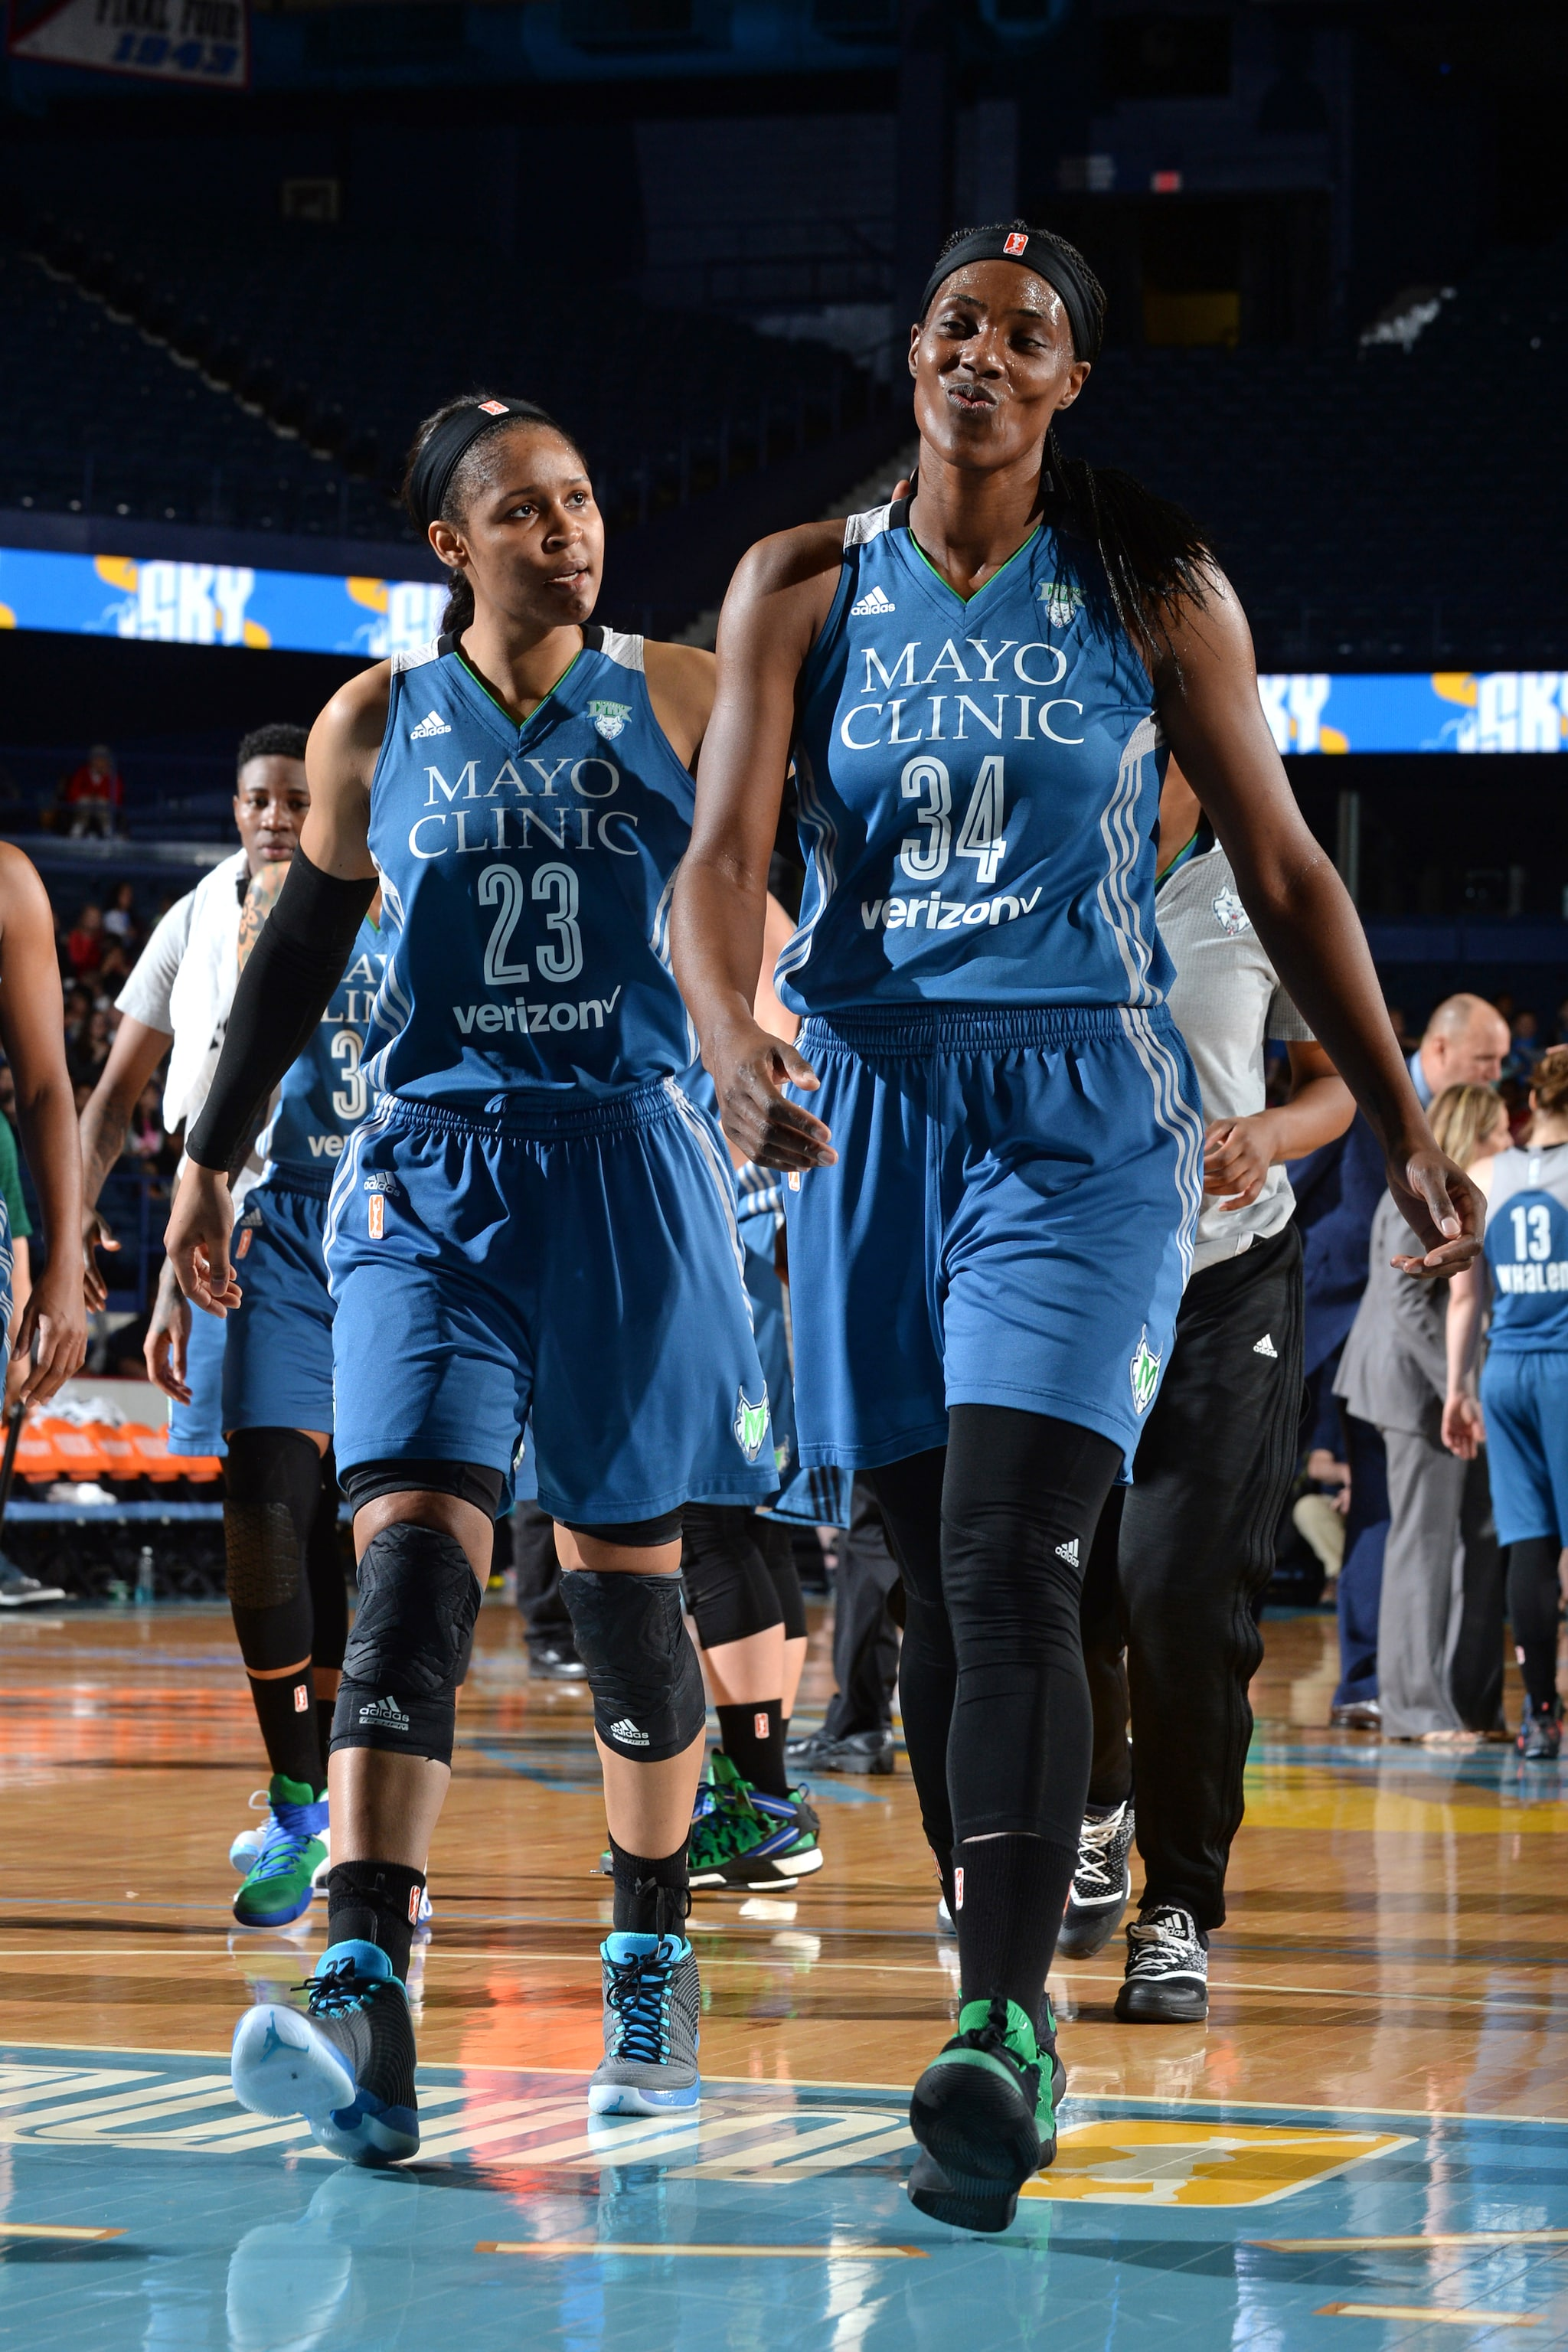 ROSEMONT, IL- MAY 18: Maya Moore #23 and Sylvia Fowles #34 of the Minnesota Lynx walk off the court at halftime during the game against the Chicago Sky on May 18, 2016 at the Allstate Arena in Rosemont, Illinois. NOTE TO USER: User expressly acknowledges and agrees that, by downloading and/or using this photograph, user is consenting to the terms and conditions of the Getty Images License Agreement. Mandatory Copyright Notice: Copyright 2016 NBAE (Photo by Randy Belice/NBAE via Getty Images)